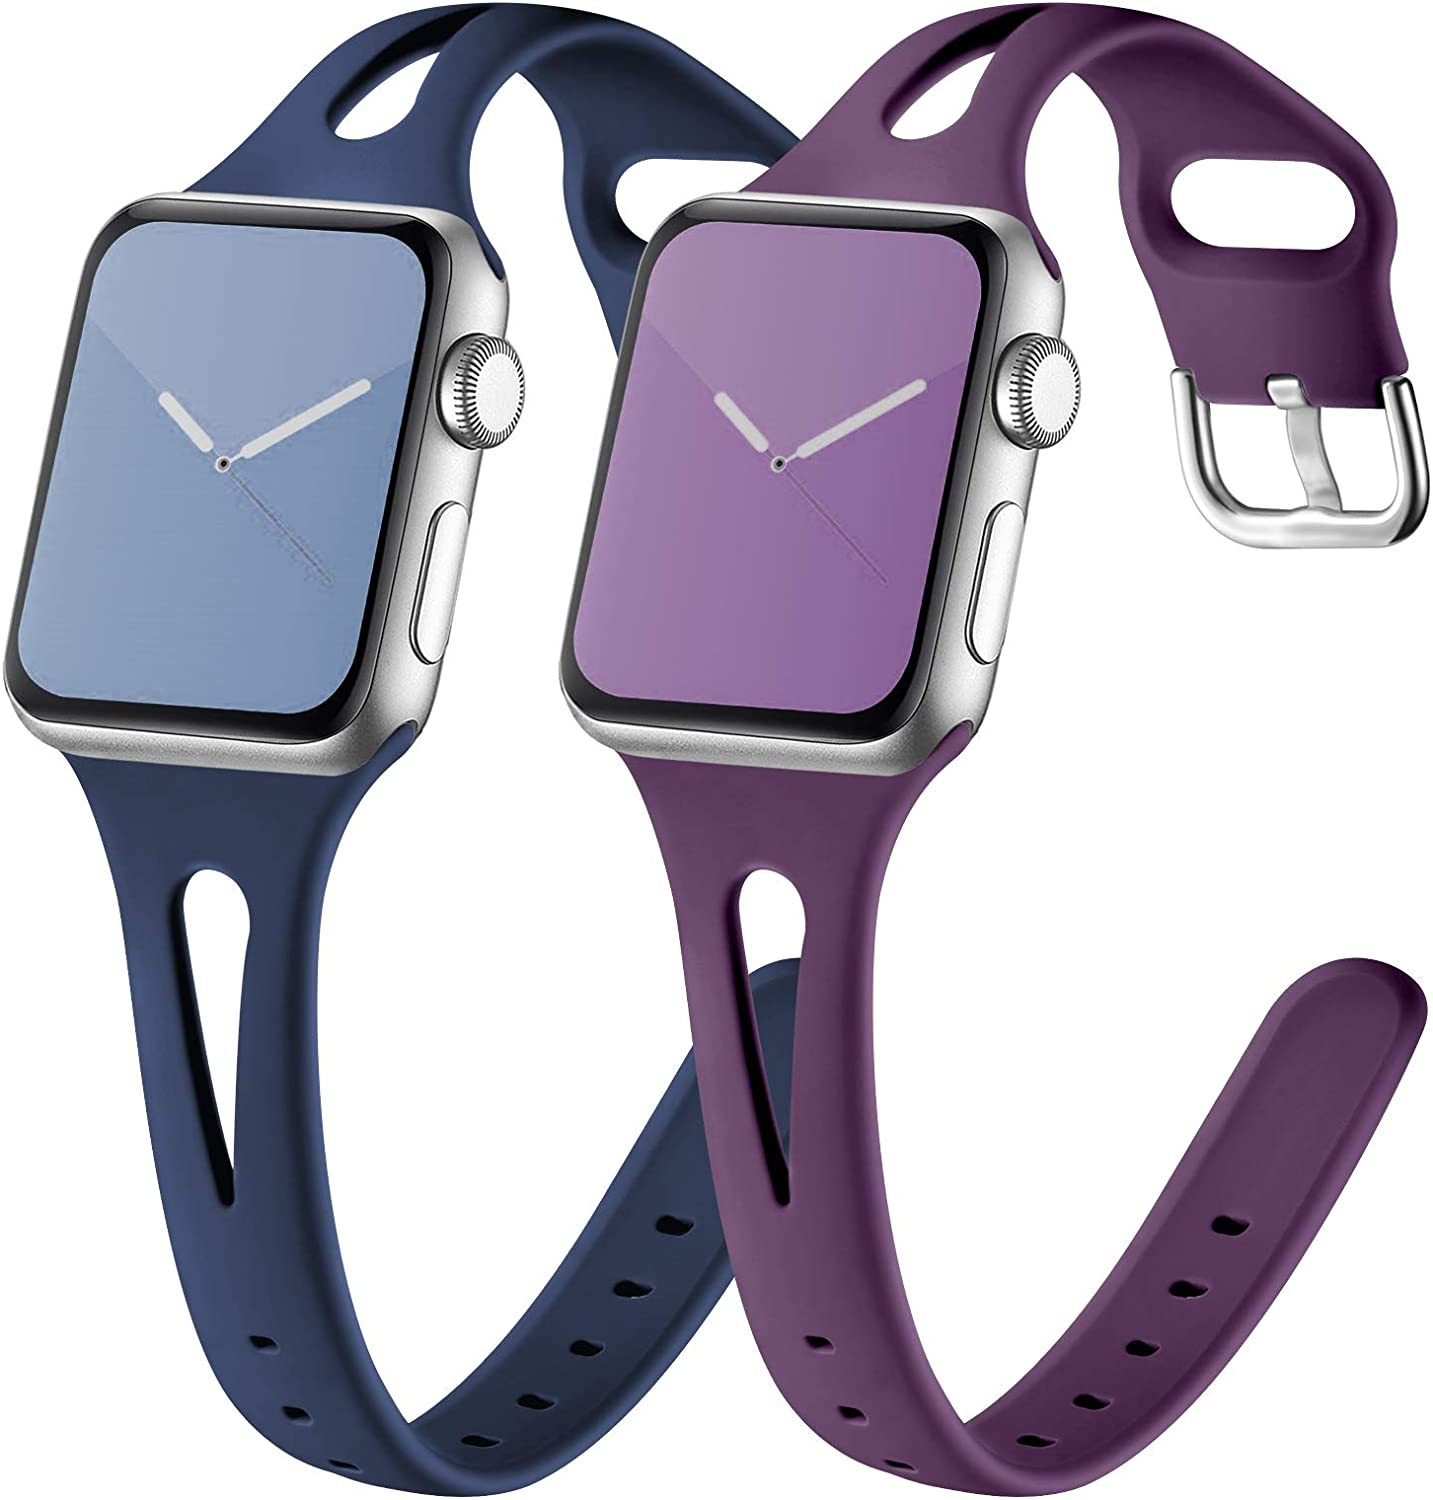 GEAK Compatible with Apple Watch Band 40mm Series 4/5 Series 6 Women, Soft Slim Wristband for apple watch bands 38mm women series 3, Waterproof iwatch bands for women 38mm Series 3 2 1 Plum/Navy Blue